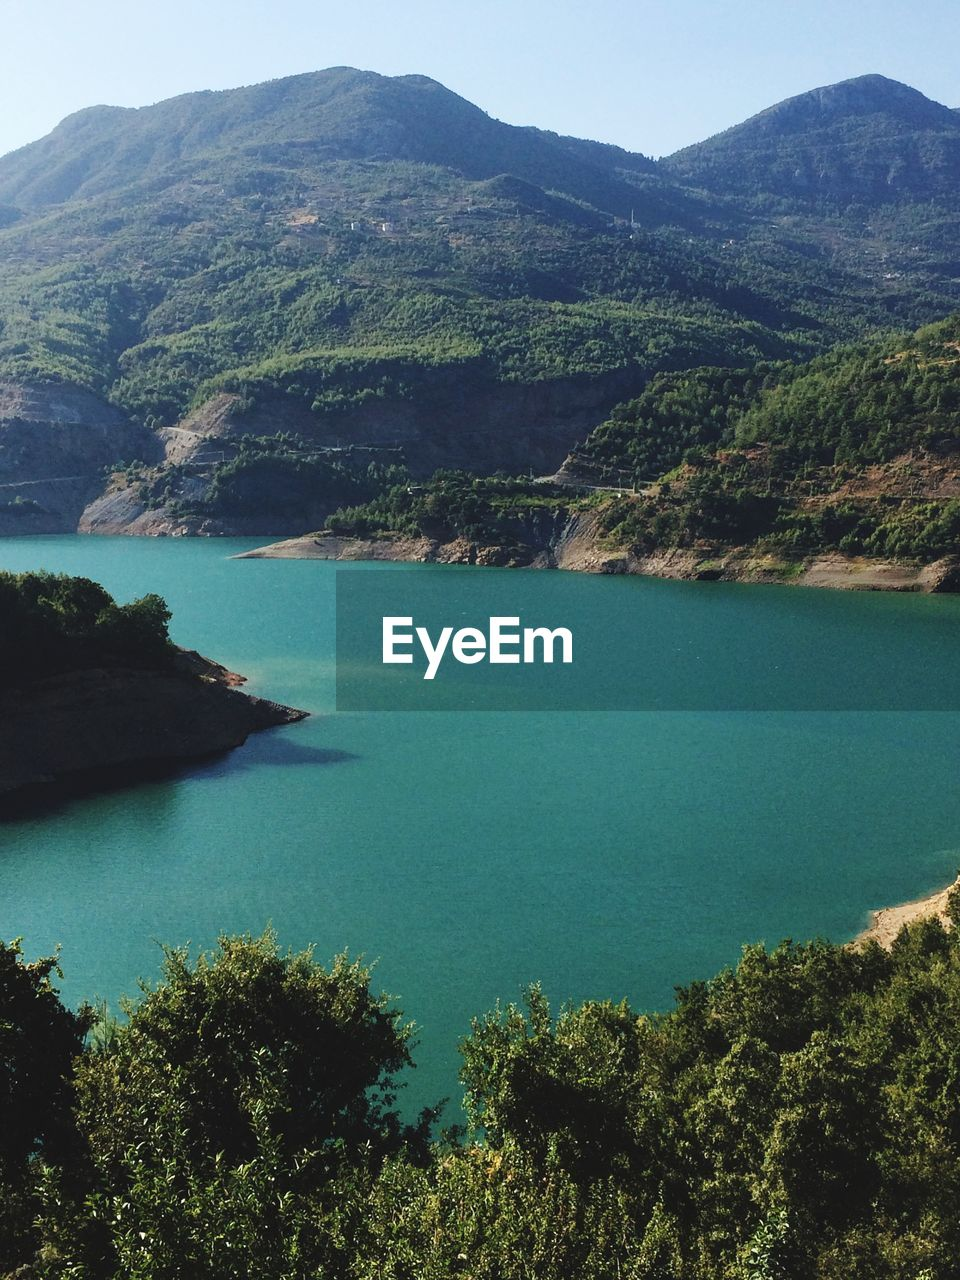 water, beauty in nature, mountain, scenics - nature, tranquil scene, tranquility, day, nature, tree, plant, lake, idyllic, no people, turquoise colored, outdoors, land, sky, mountain range, bay